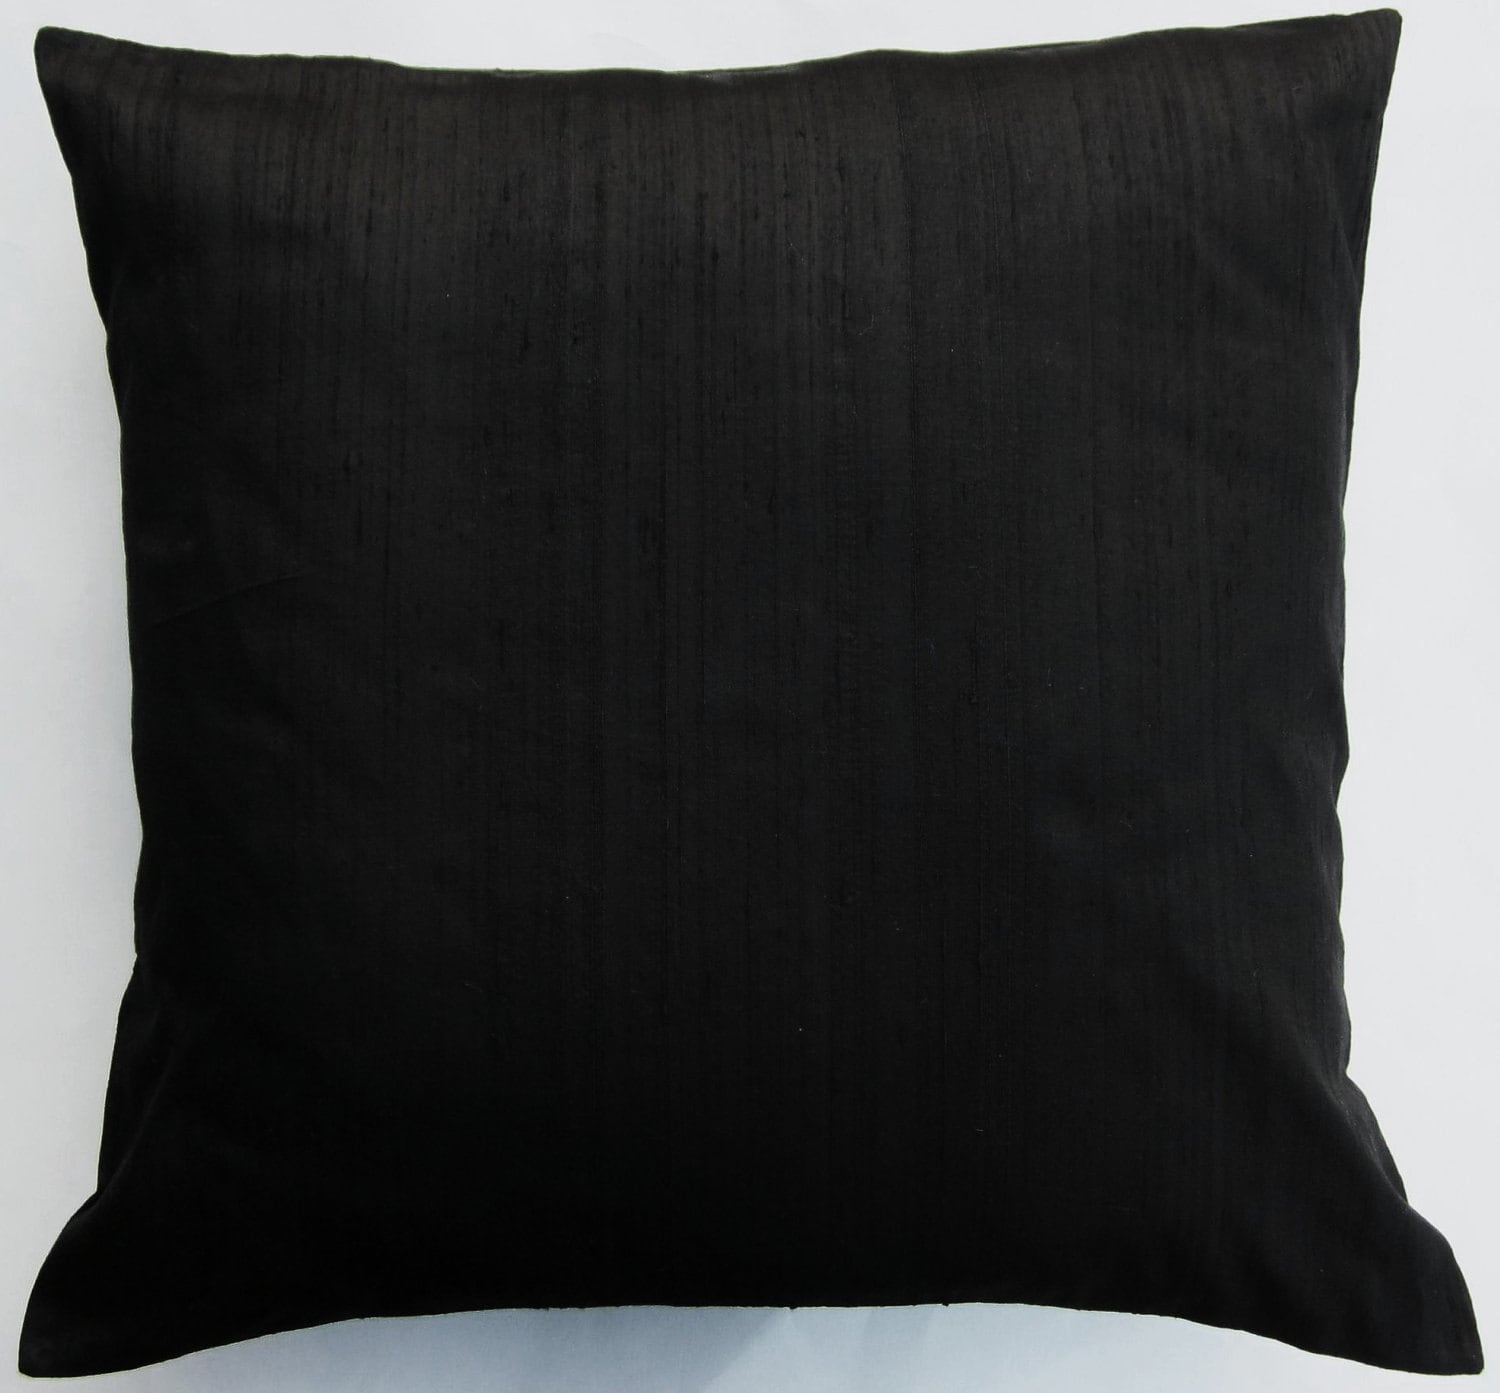 Black Throw Pillows For Bed : Black Pillow Cover Black Silk Throw Pillow Cover by sassypillows